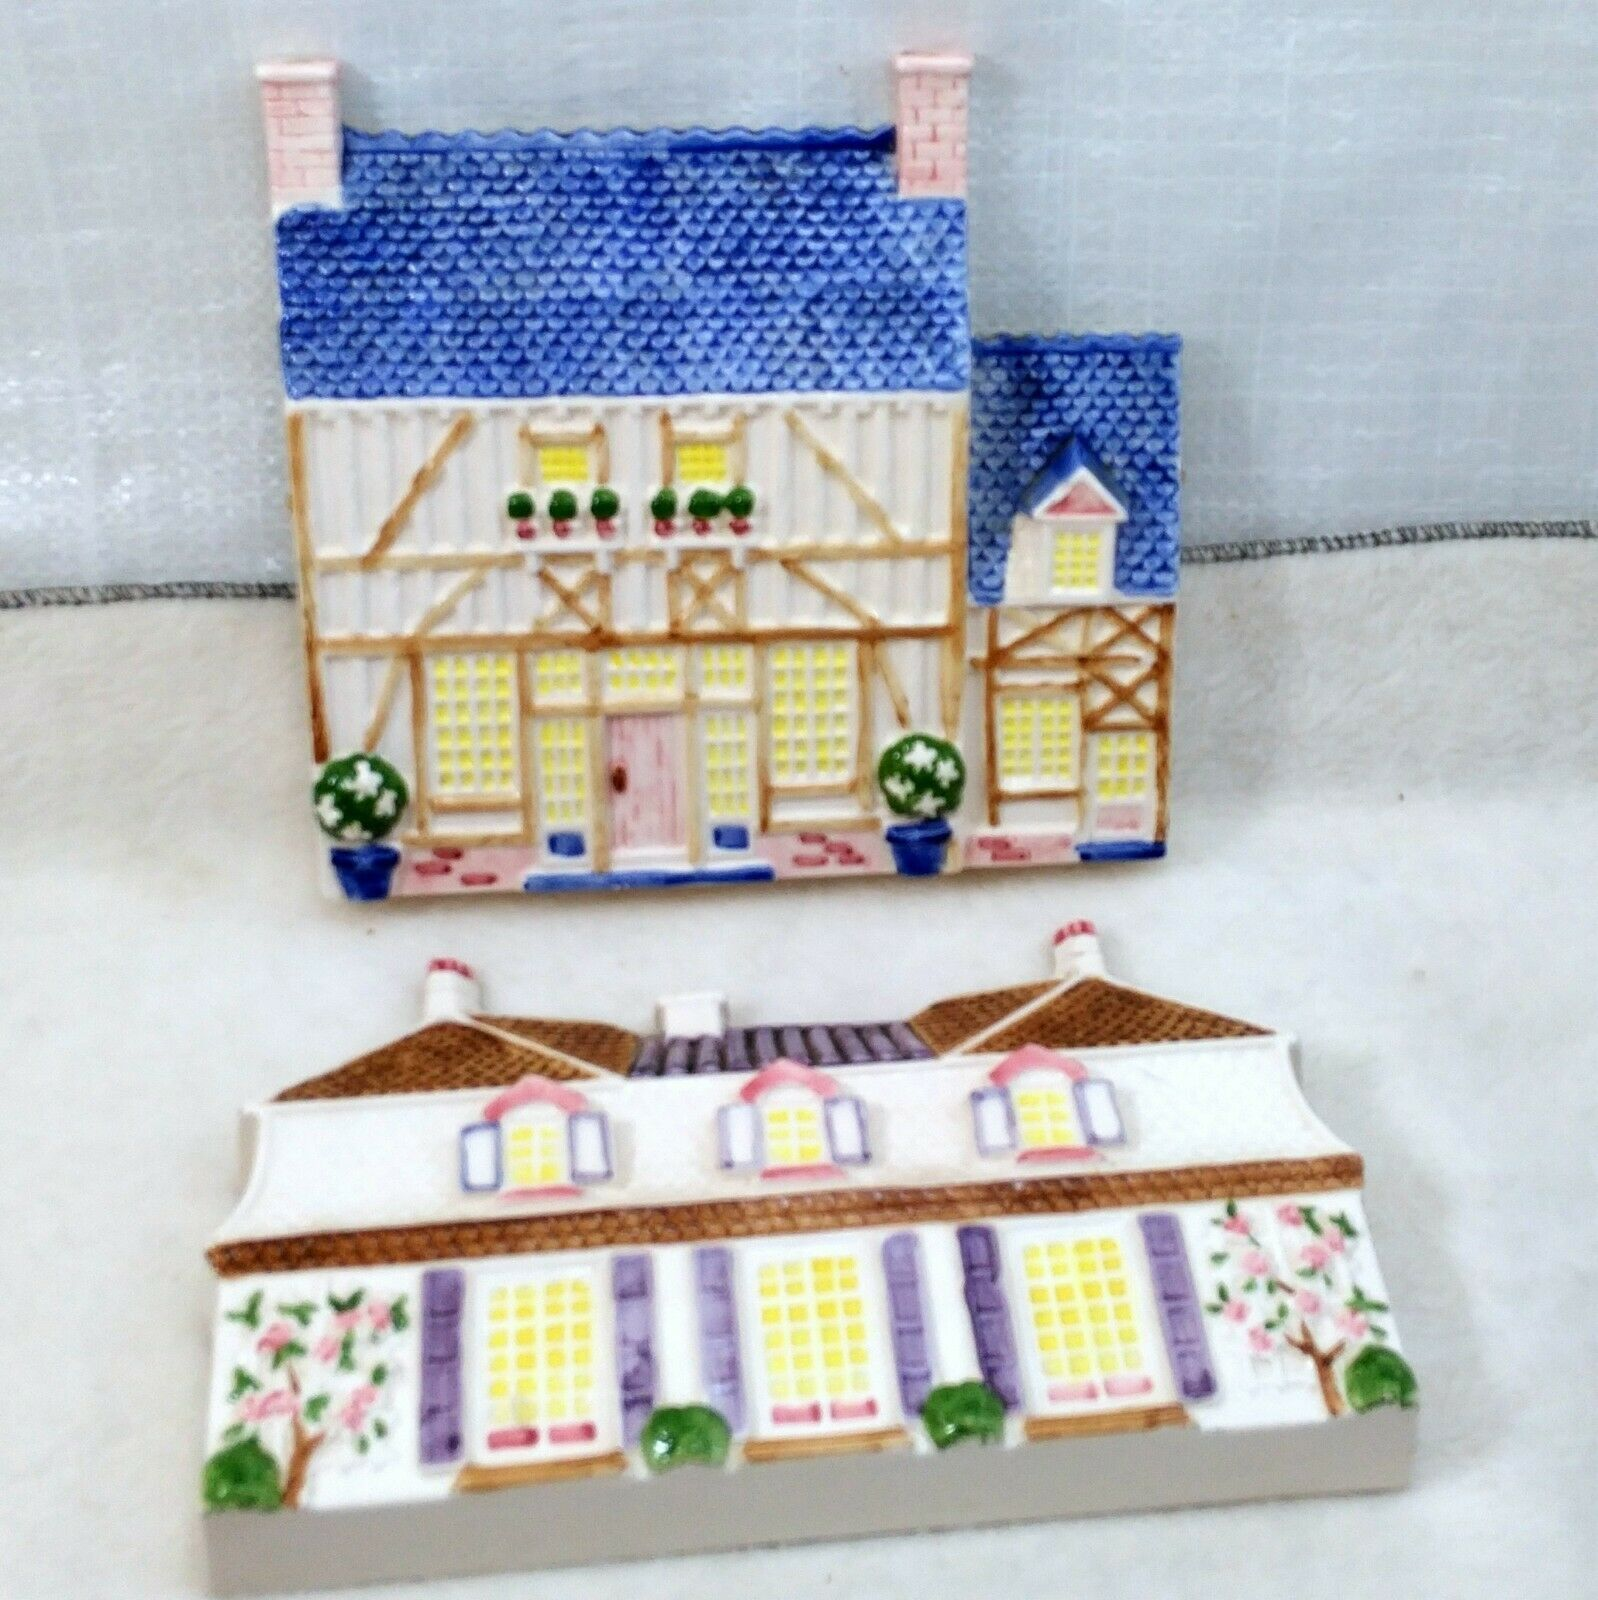 Sigma Taste Setter House Wall Plaques Set of 2 Wall Hangings